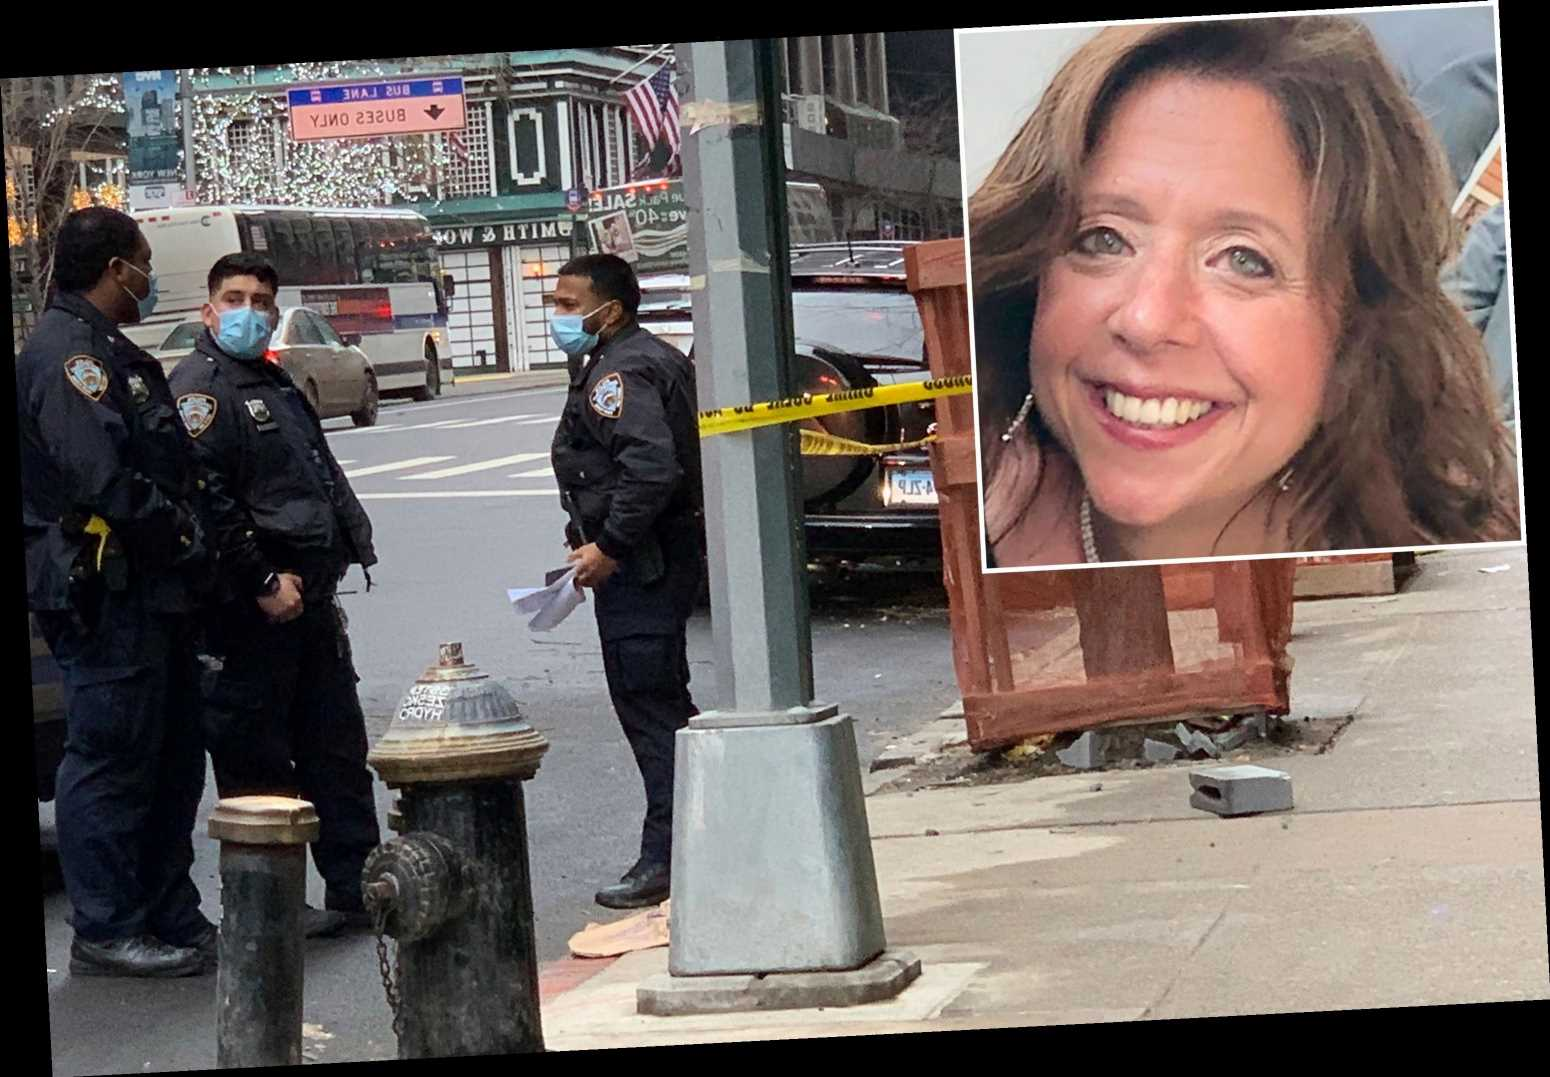 Suspect arrested in random NYC cinder block attack on Cuomo staffer